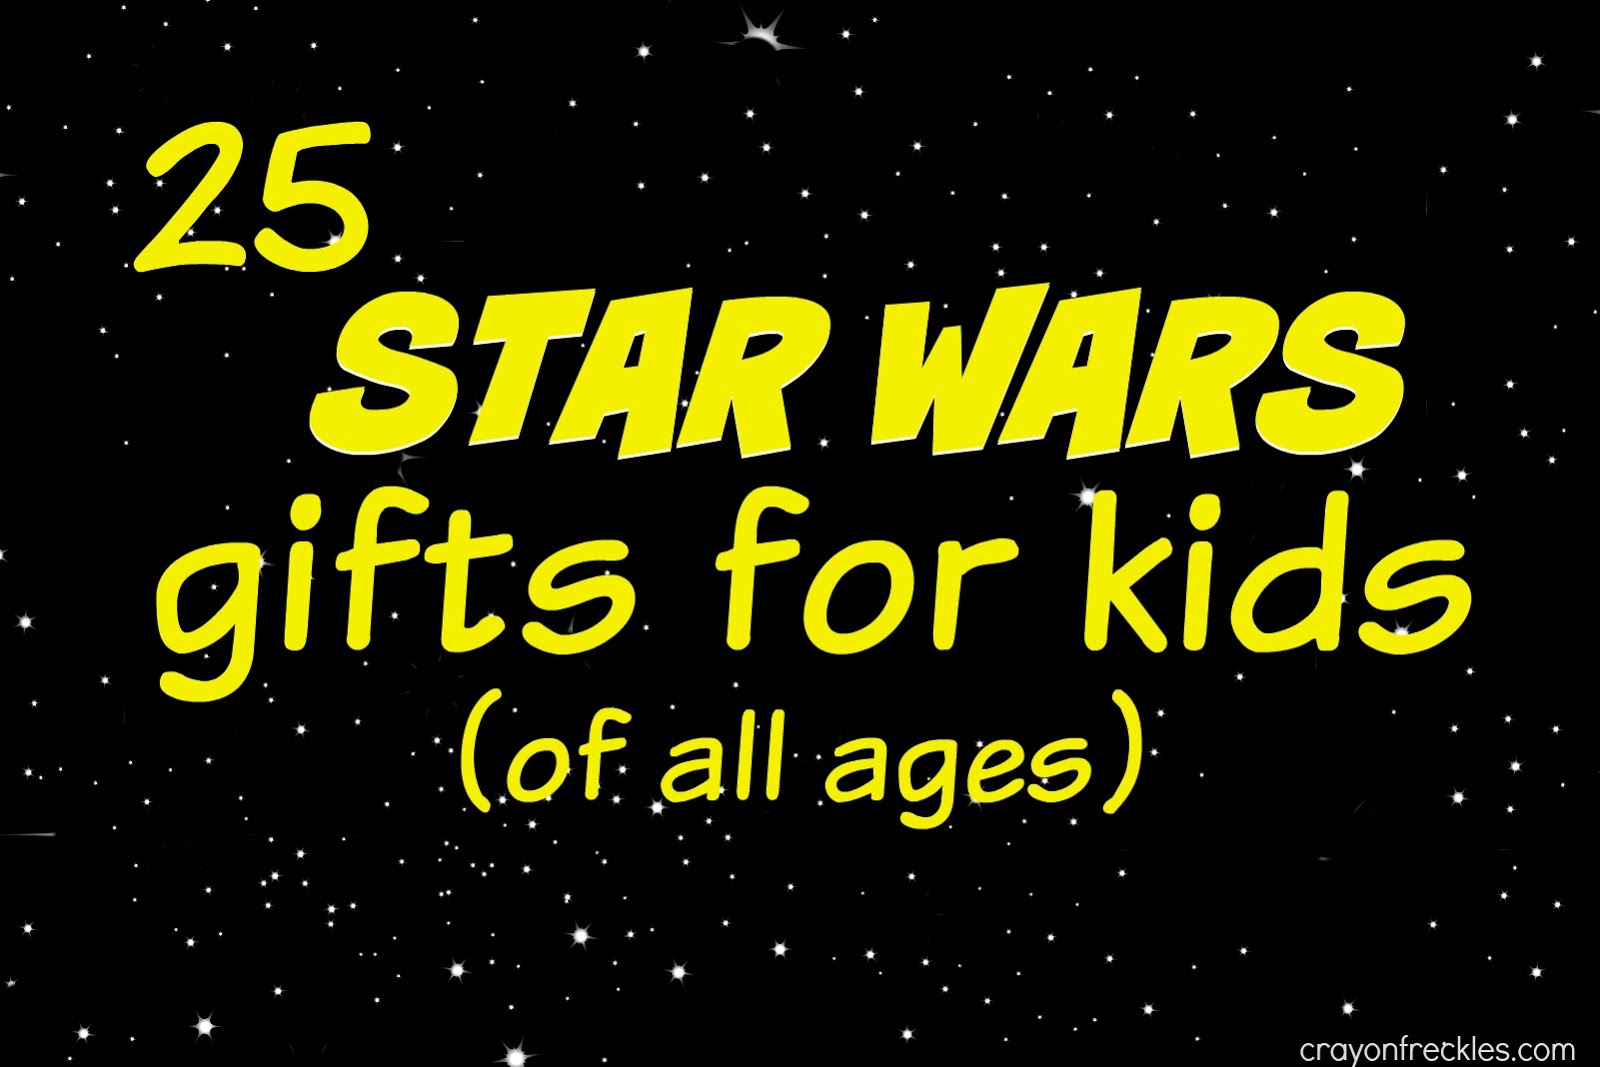 Star Wars House Items Crayon Freckles 25 Star Wars Gifts For Kids